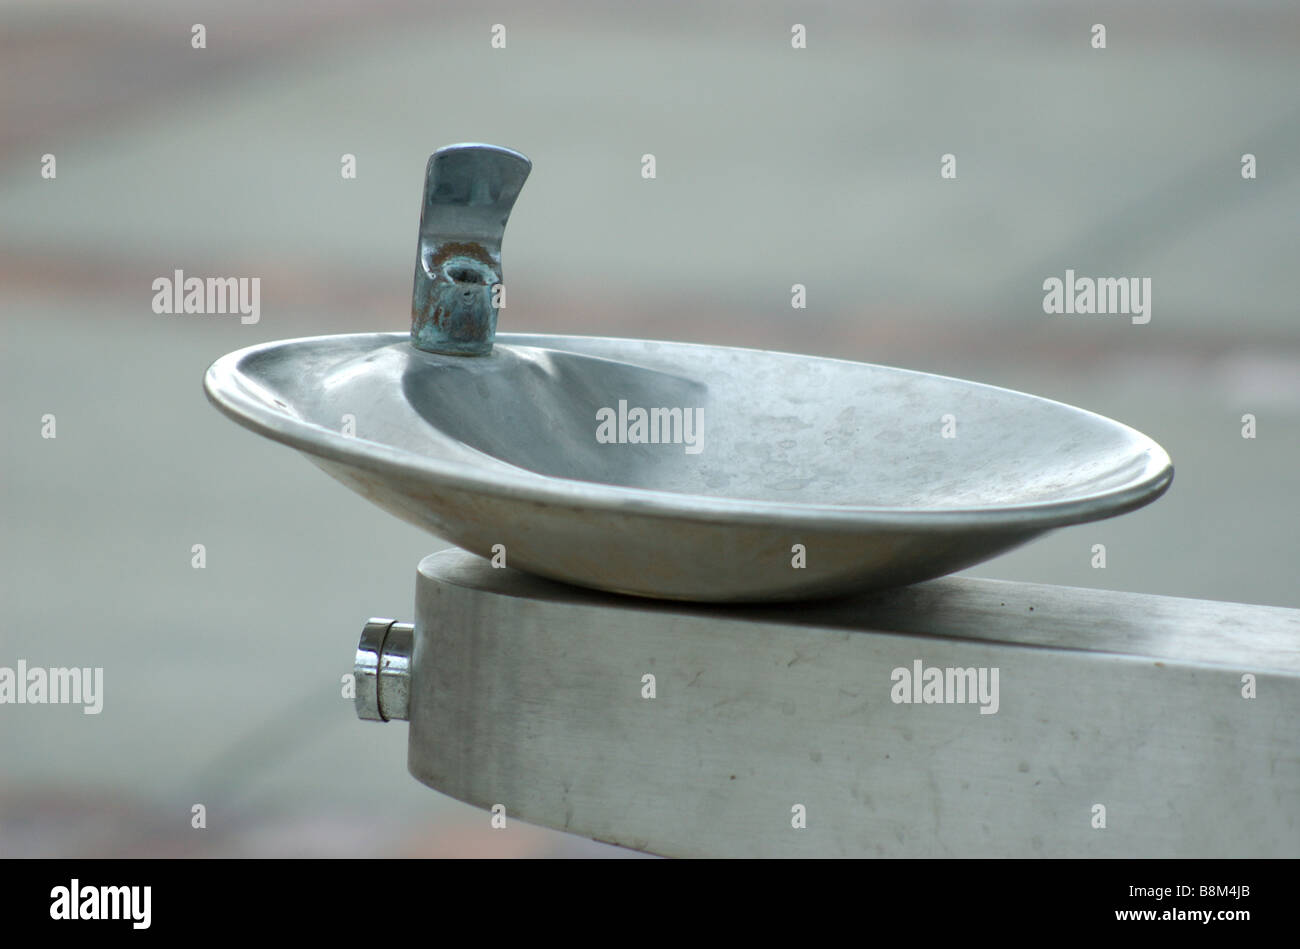 A public water fountain - Stock Image